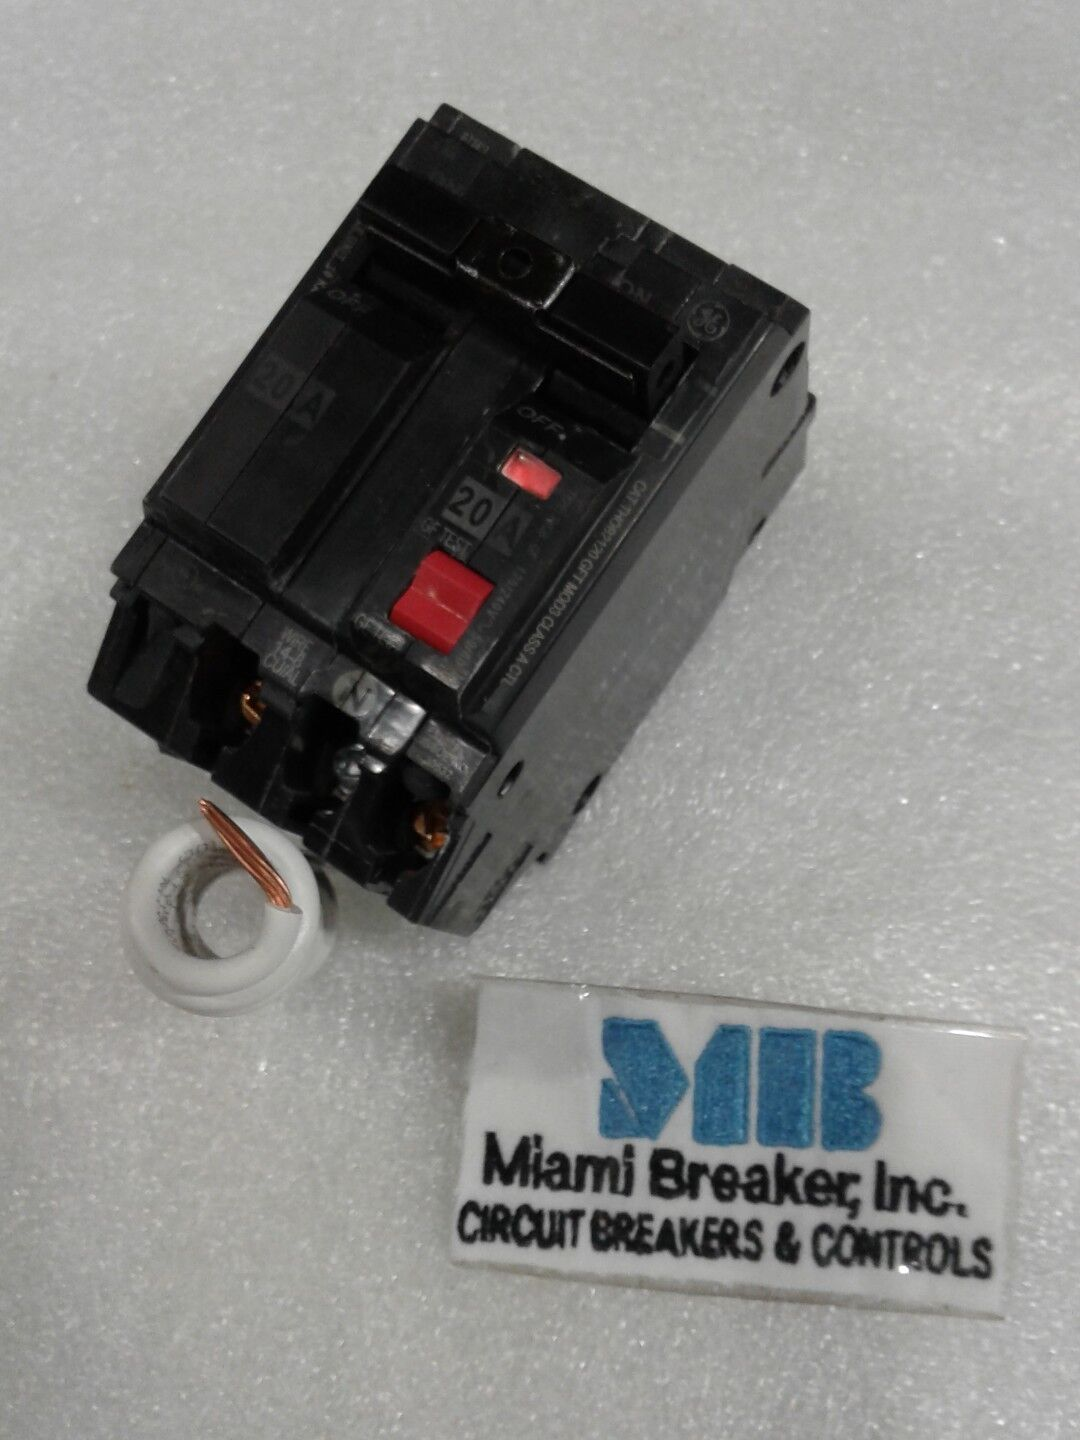 Ge Thqb2120gft Circuit Breaker 20 Amp 240 Volt 1 Phase Ebay Industrial Thql1120afp2 Arc Fault At Norton Secured Powered By Verisign